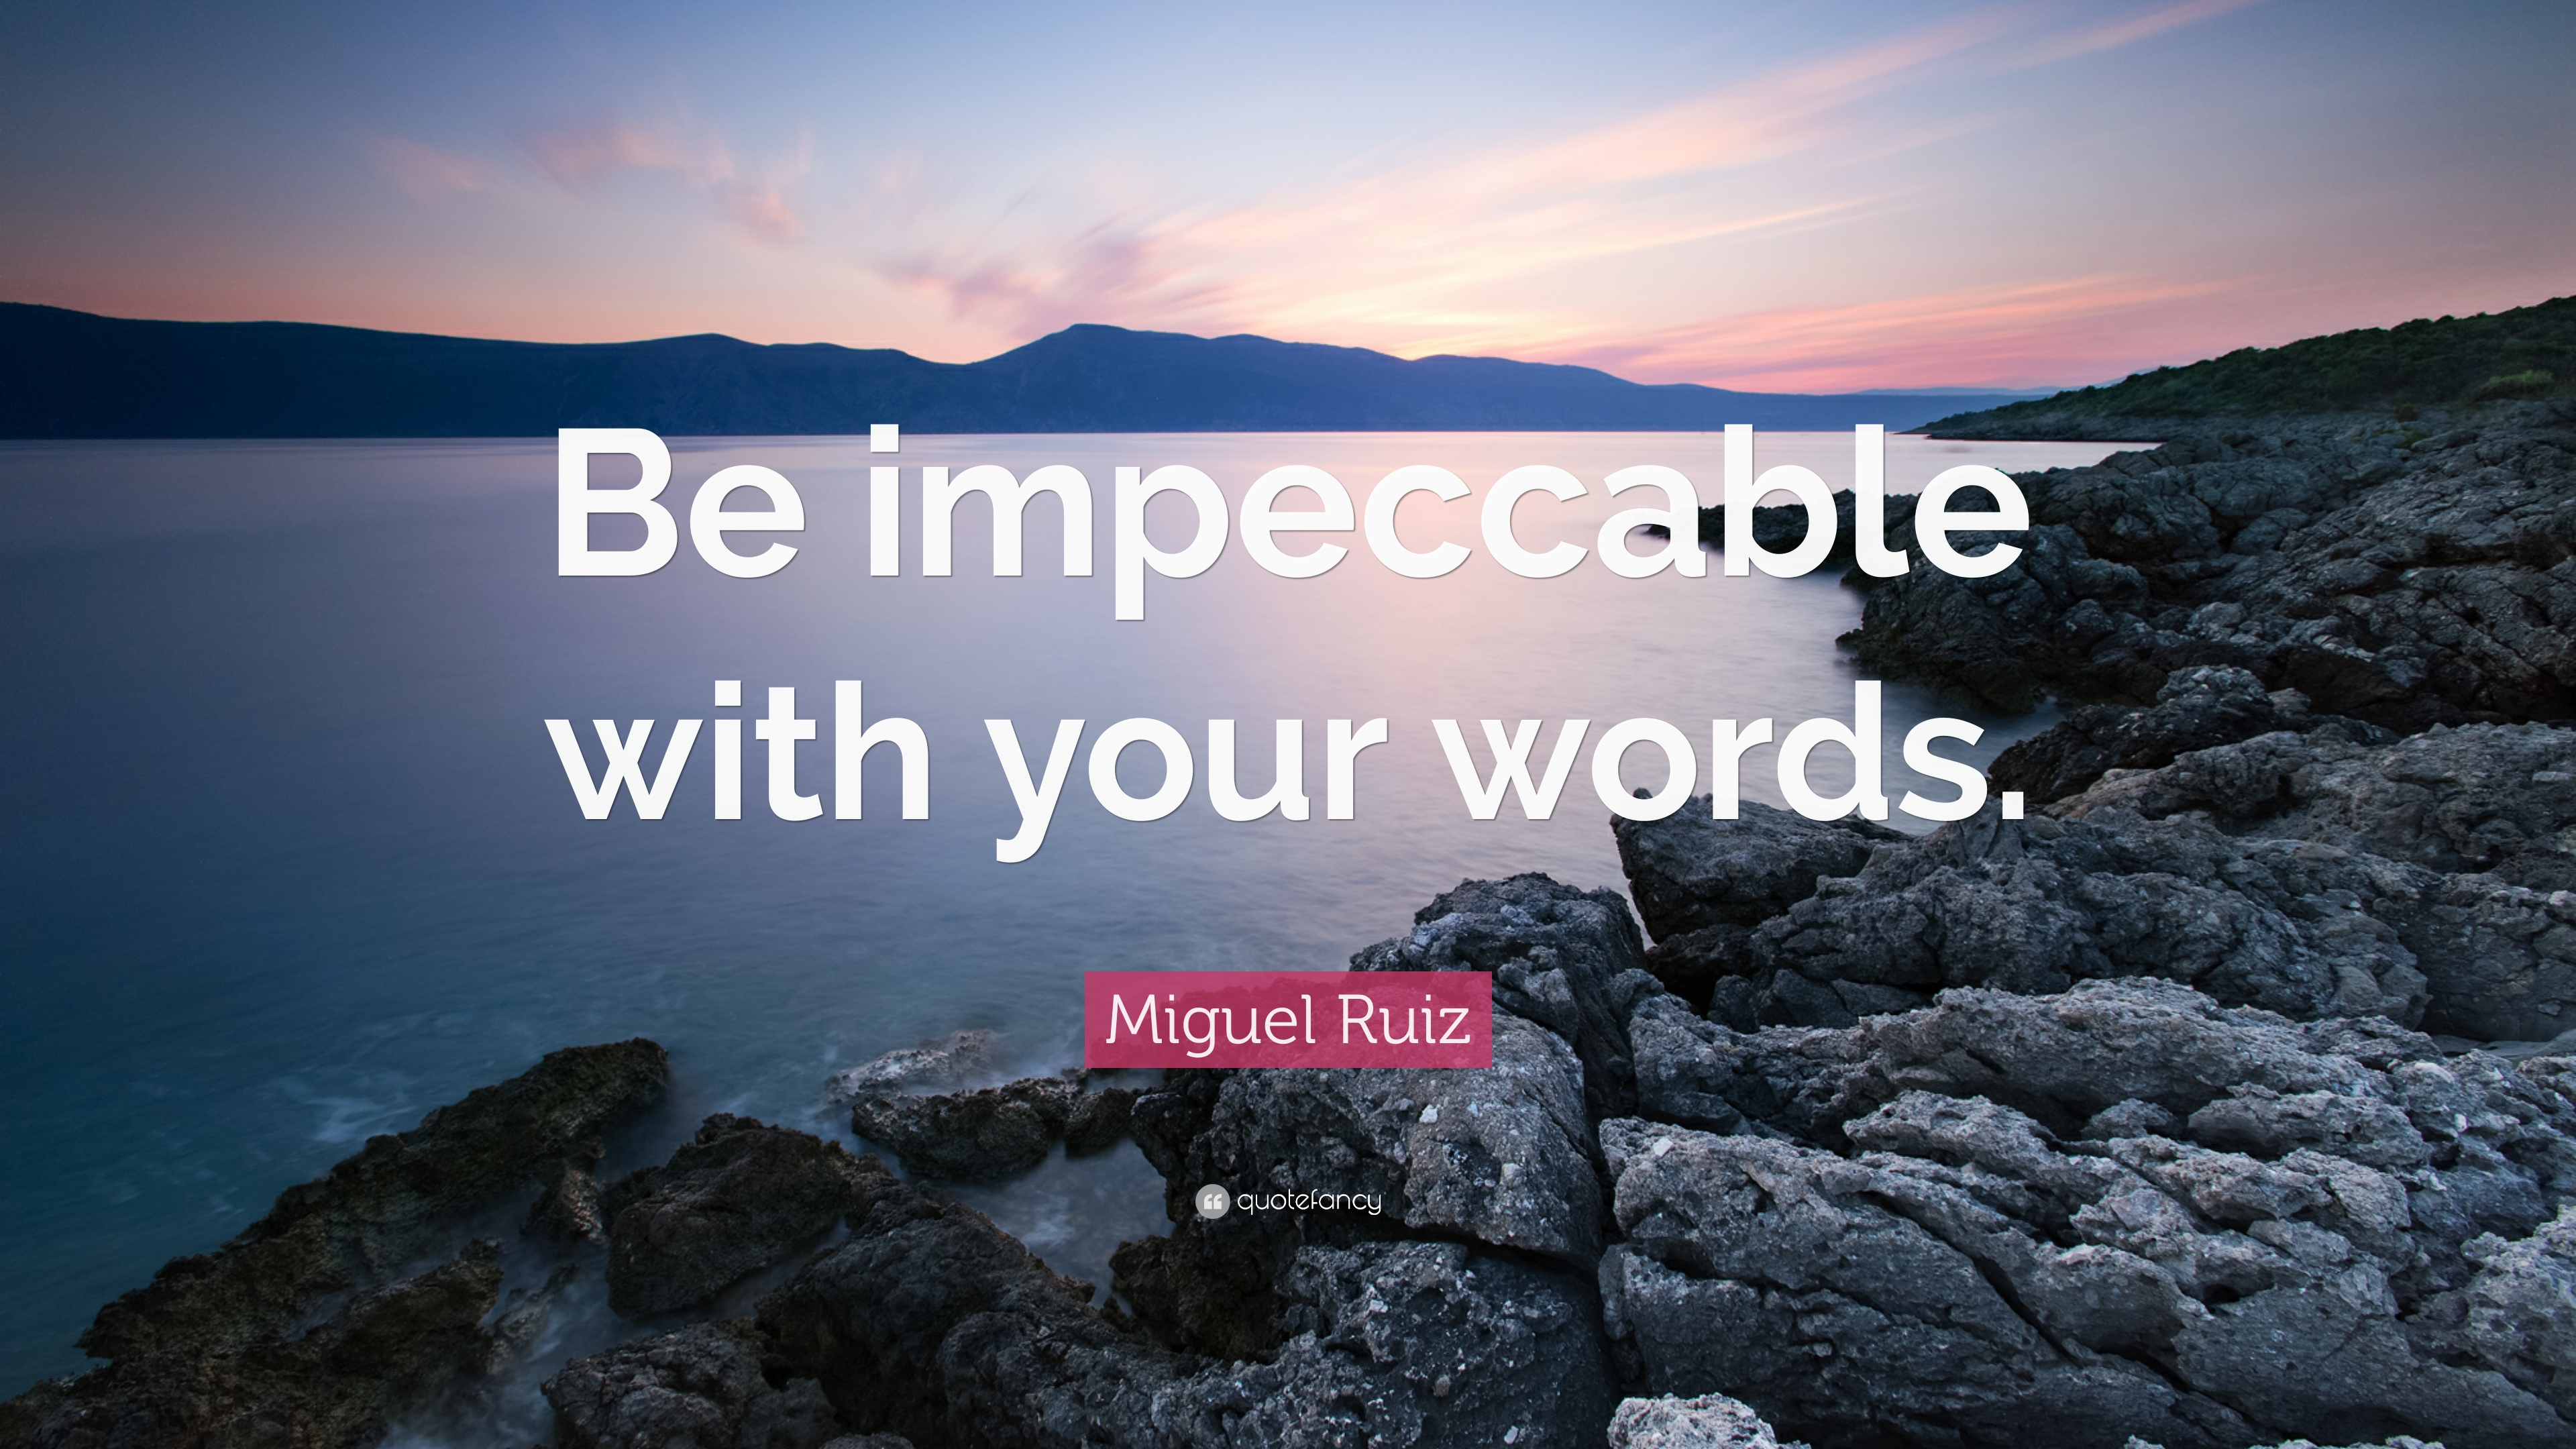 Miguel ruiz quote be impeccable with your words